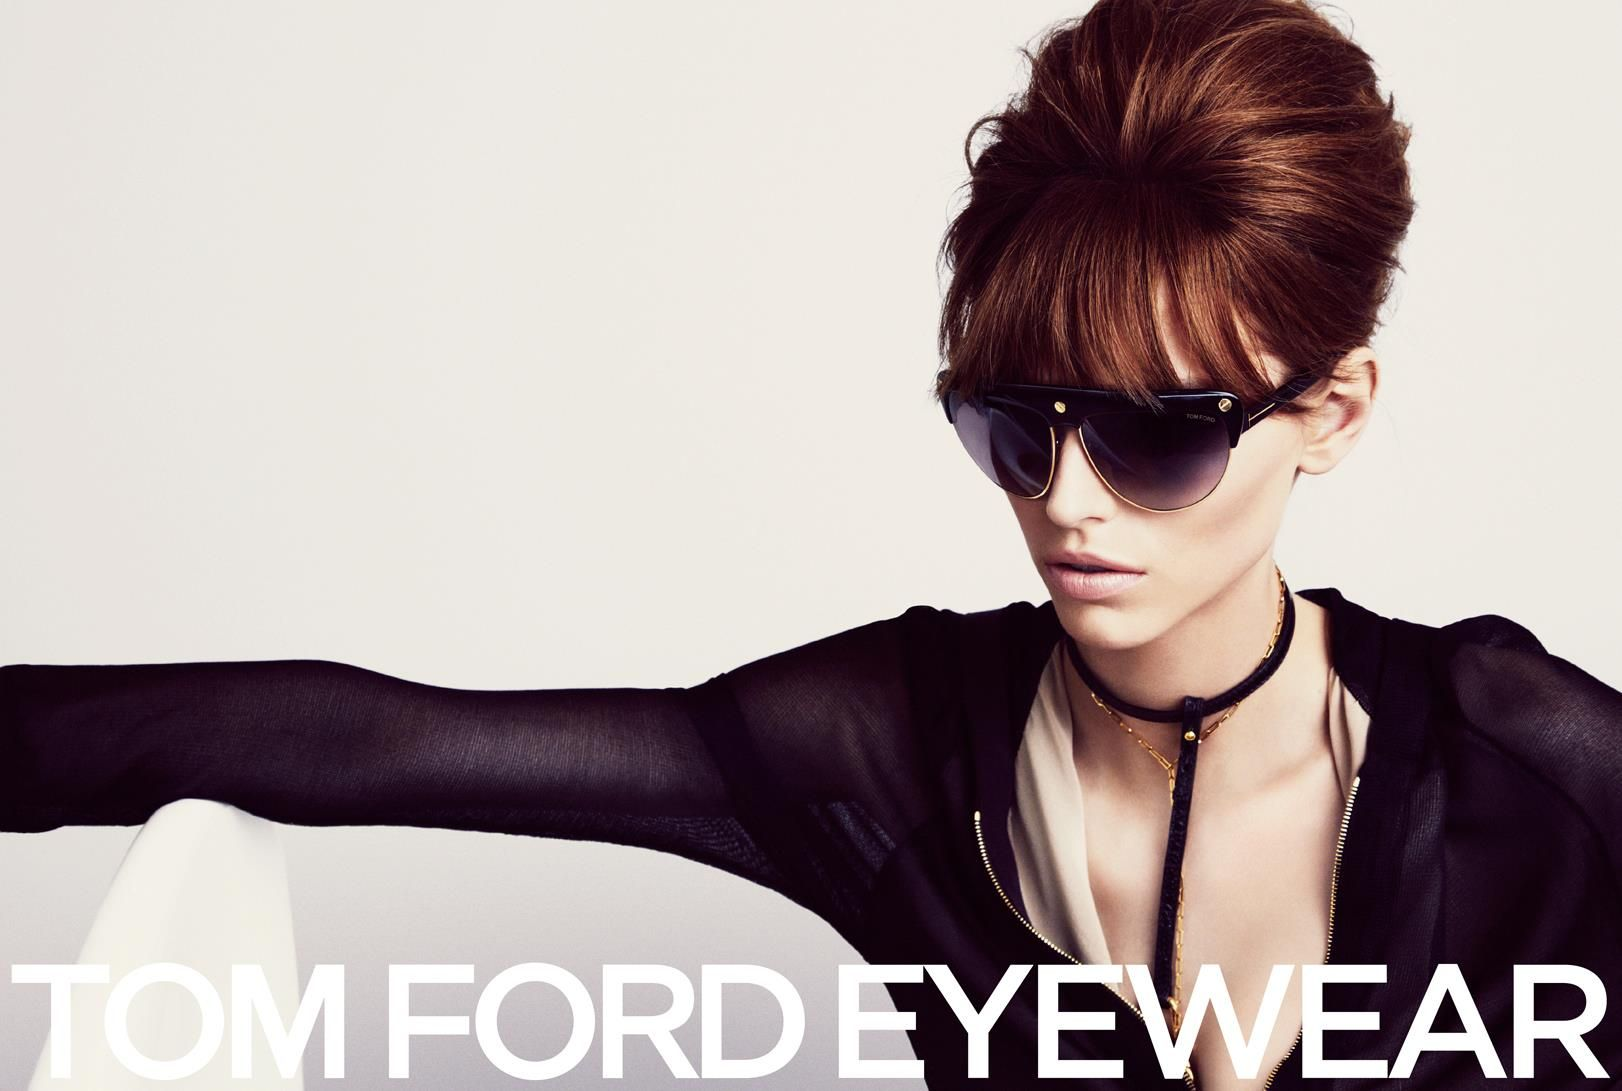 52cbdc960e0 TOM FORD Spring Summer 2013 Ad Campaign  Karlina Caune and Simon Van  Meervenne (Hi Res) TFE SS13 CAMPAIGN